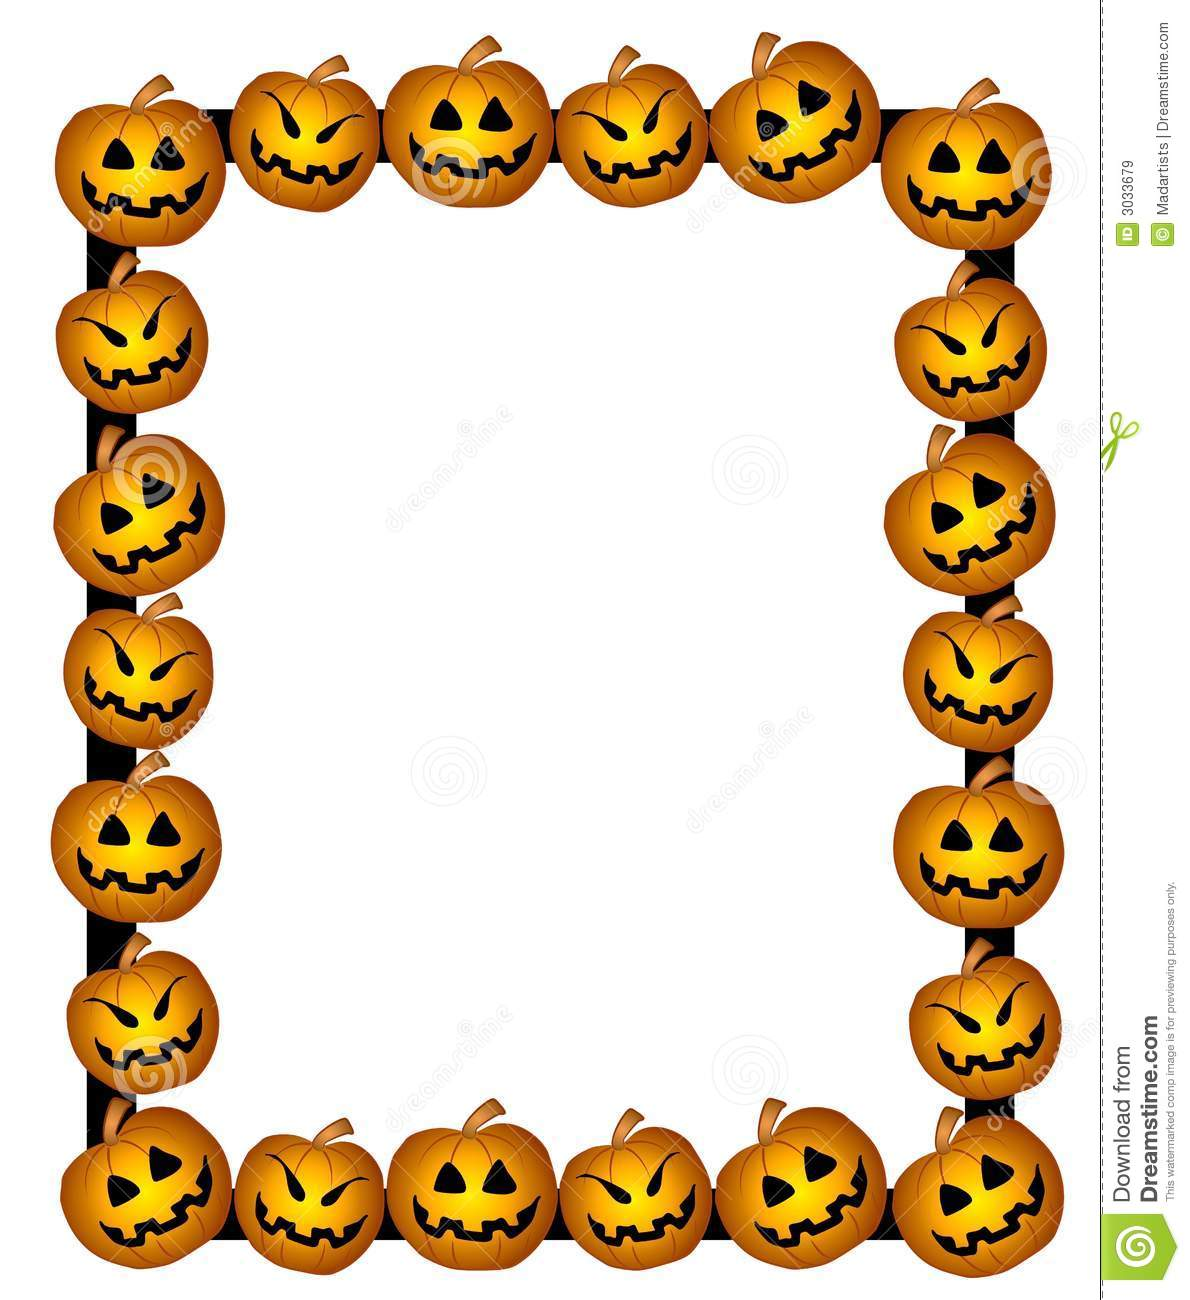 Clip Art Pumpkin Border Clip Art pumpkin border clipart panda free images